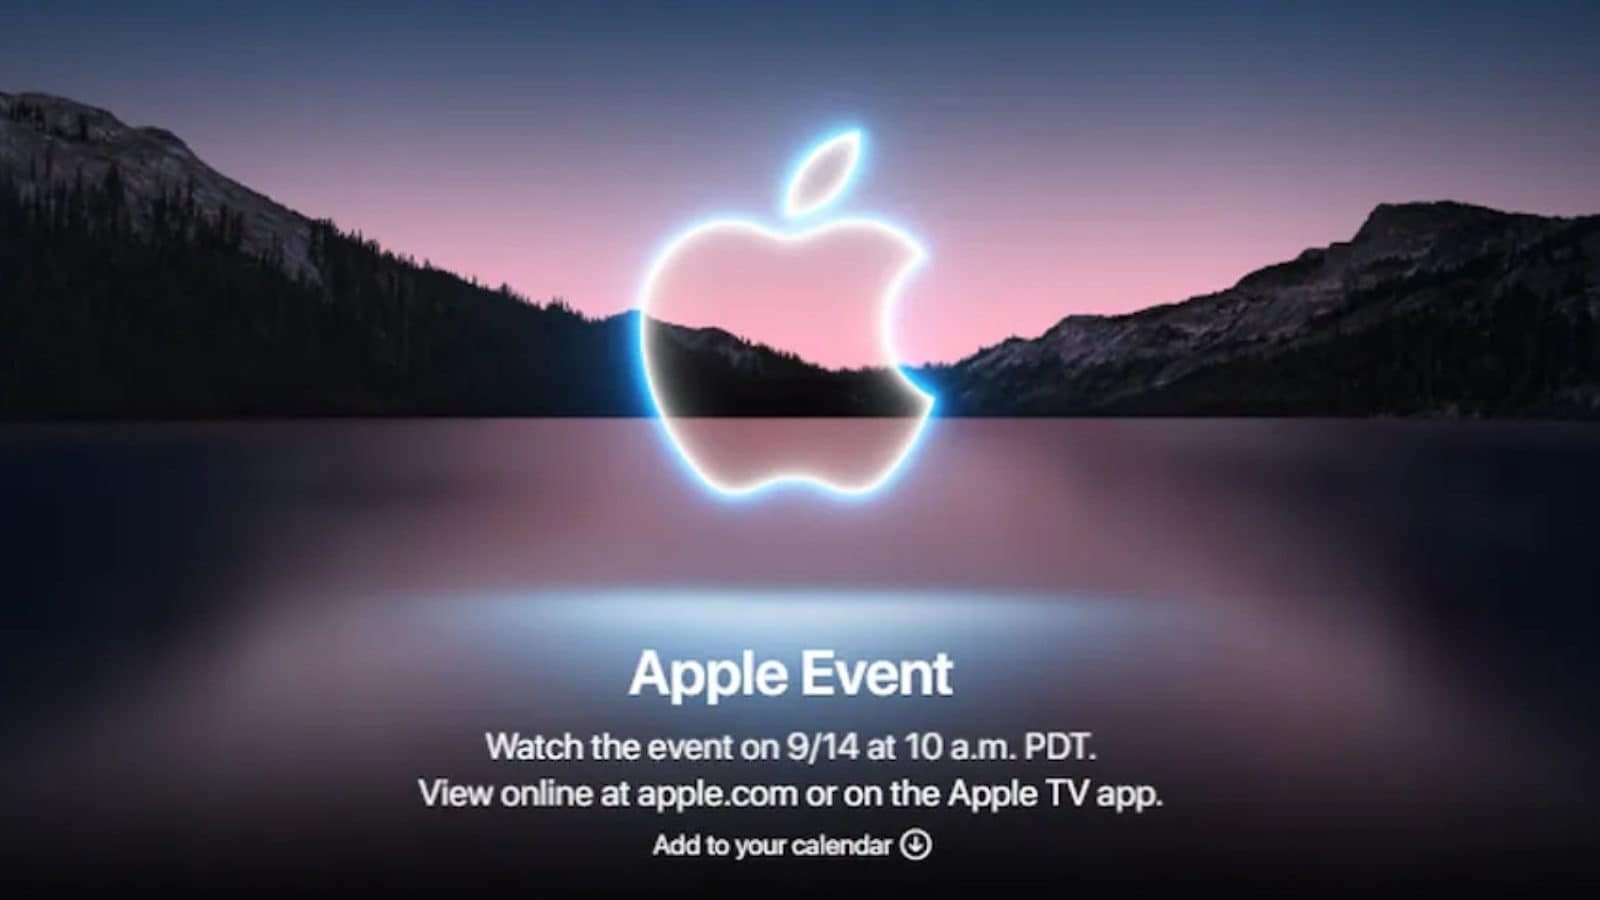 Apple Event Live Updates: iPhone 13 and 13 Mini, New iPad Mini, 9th Gen iPad, Watch Series 7 Launched